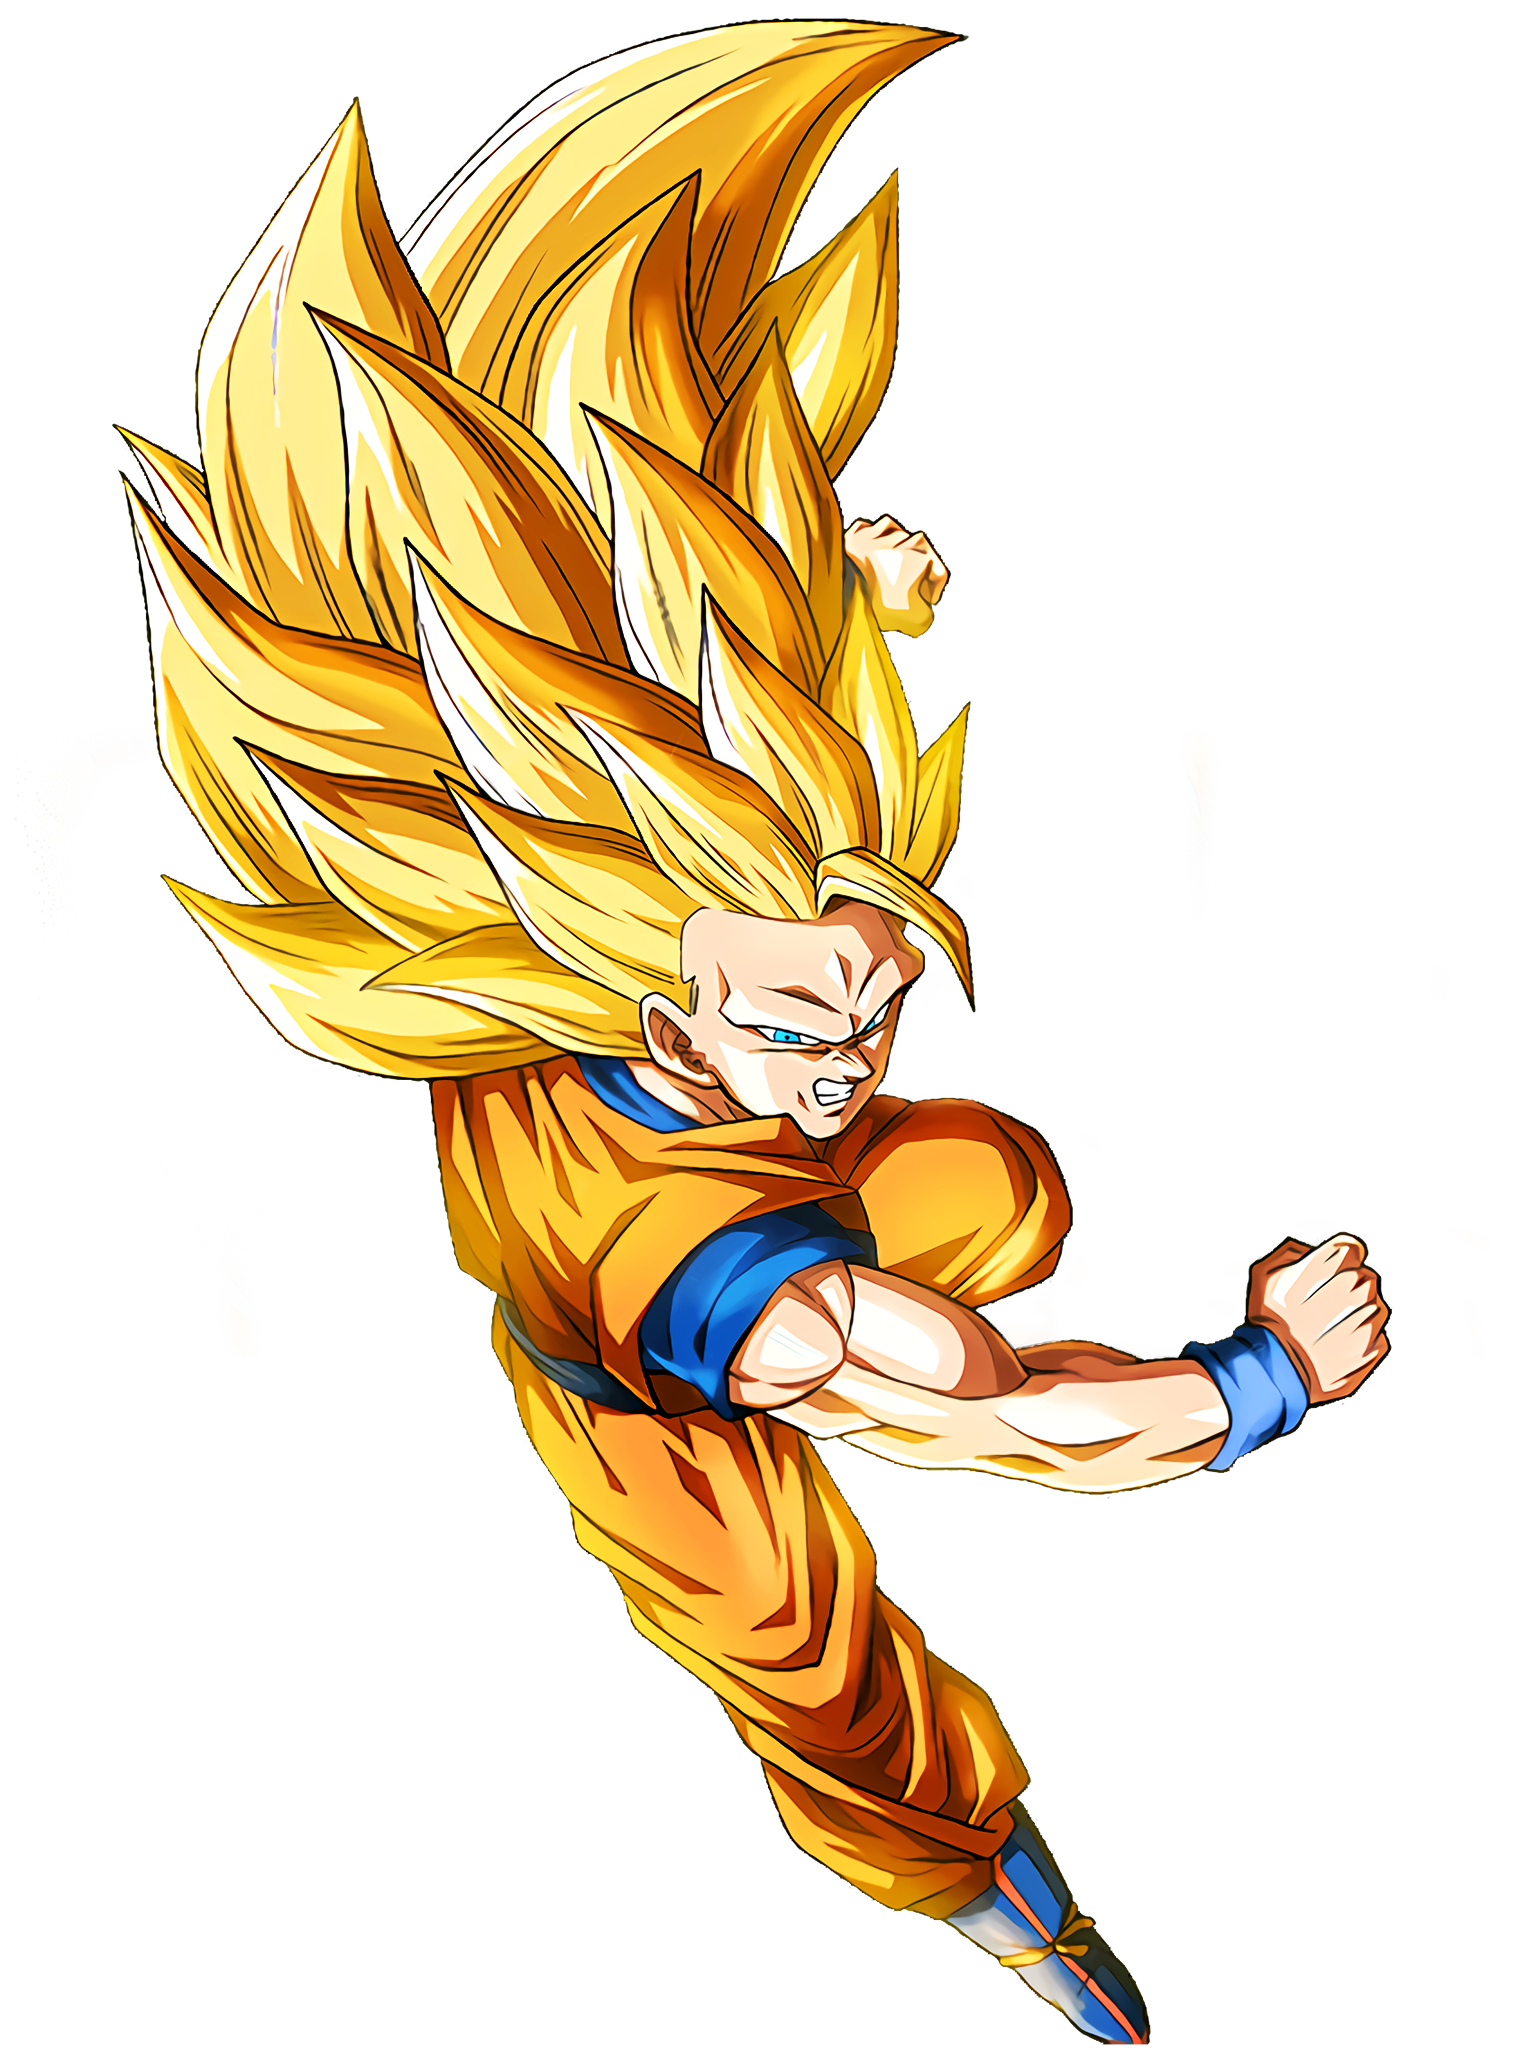 Clutching Victory Super Saiyan 3 Goku Render (Dragon Ball Z Dokkan Battle) .png